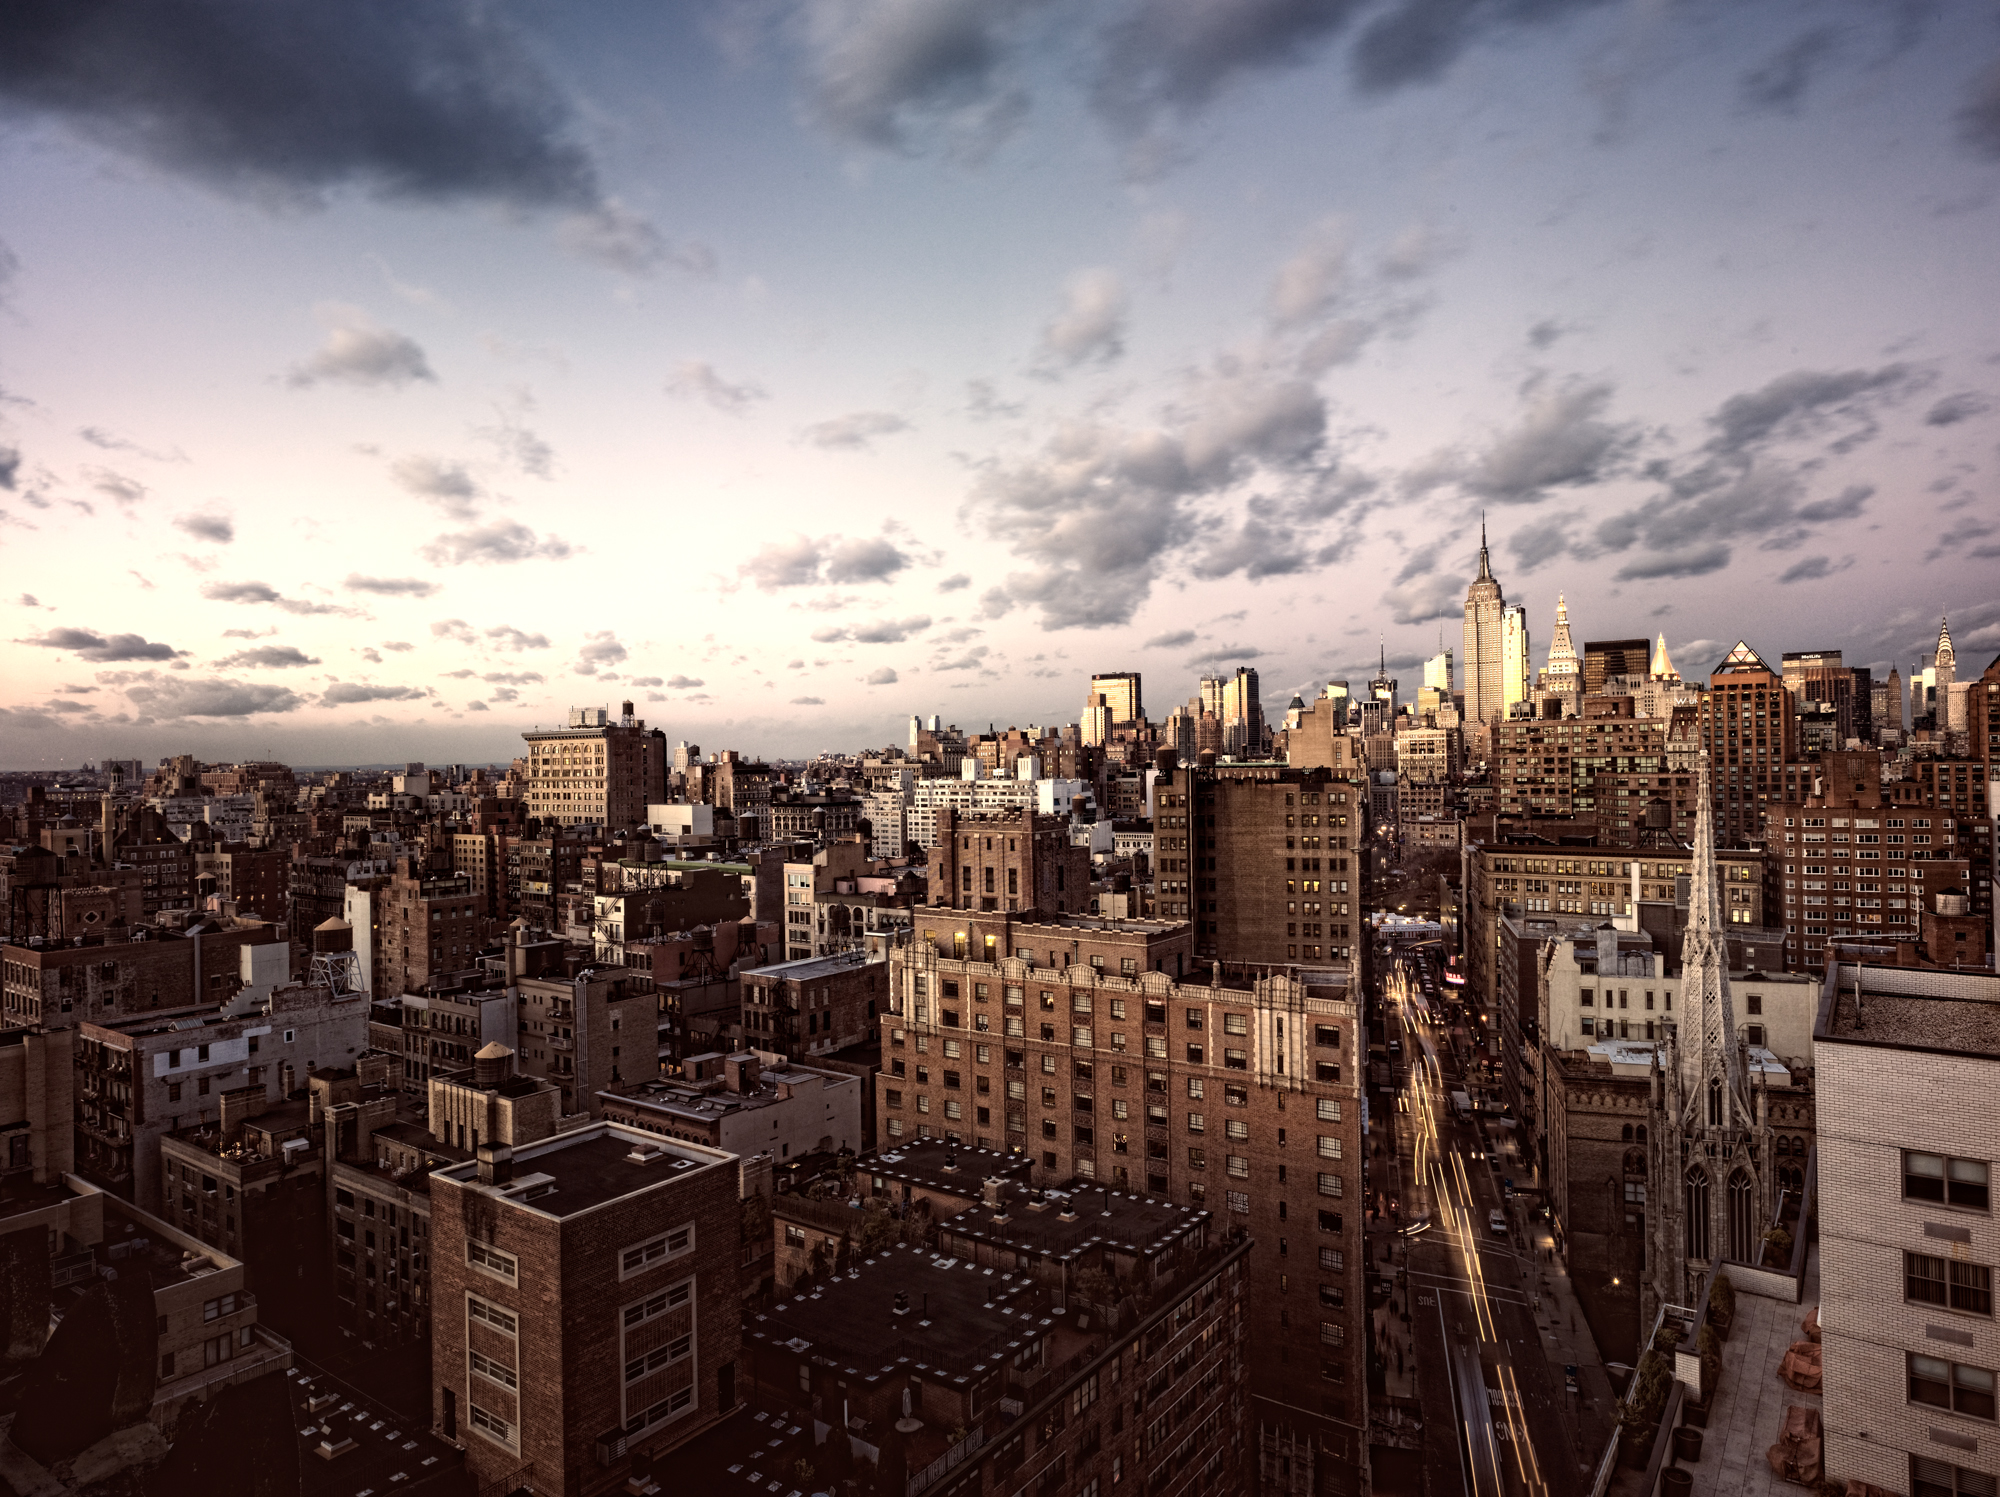 KARSTEN STAIGER    NEW YORK LOVE STORY   Title:      DECEMBER 12,2009         Edition of 5   44 x 32 inches  Kodak Metallic with white ArtBox        $3,500.00